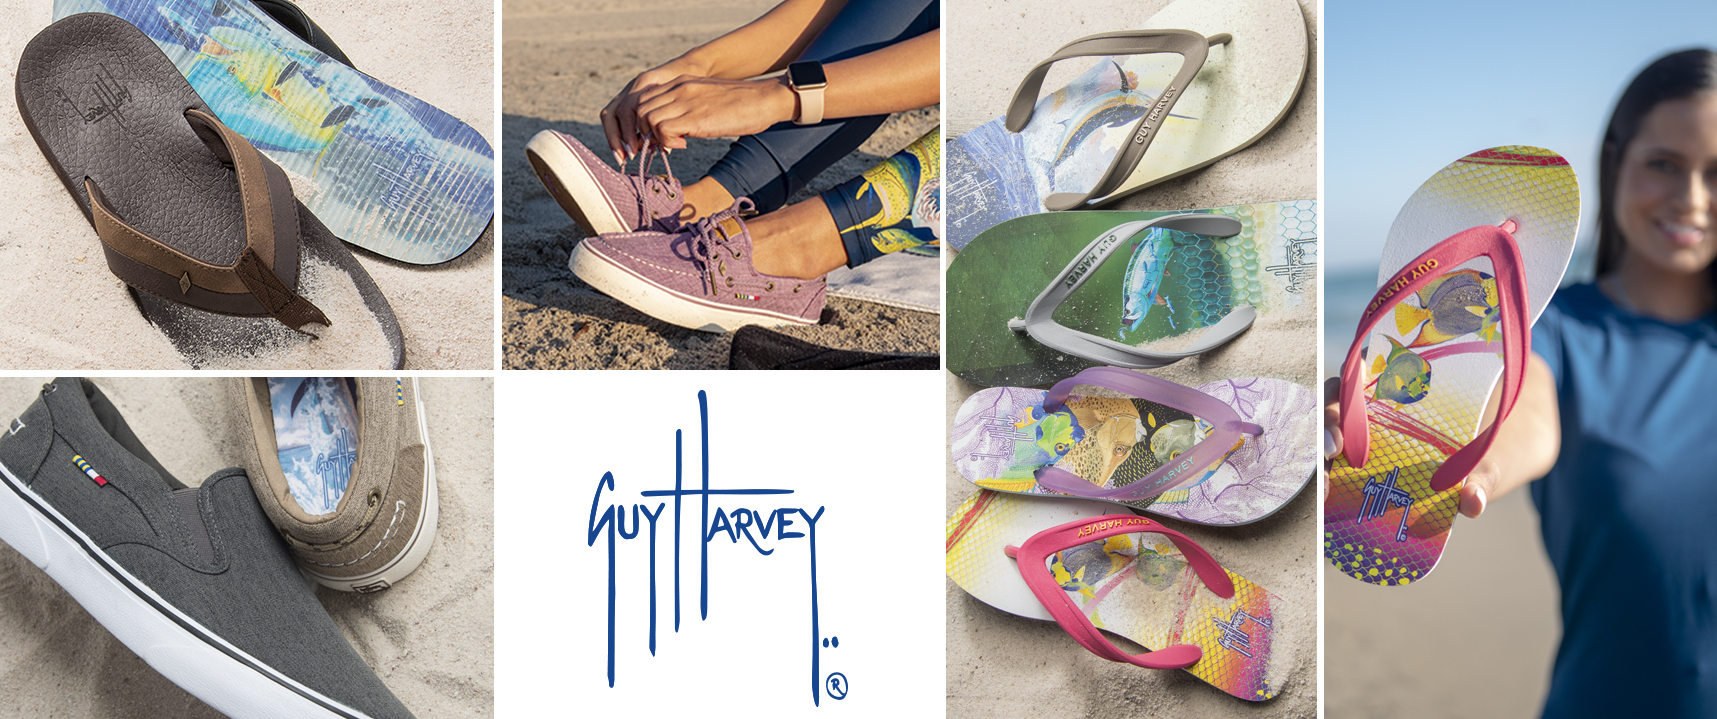 Guy Harvey nautical artist designed flip-flops and casual shoes